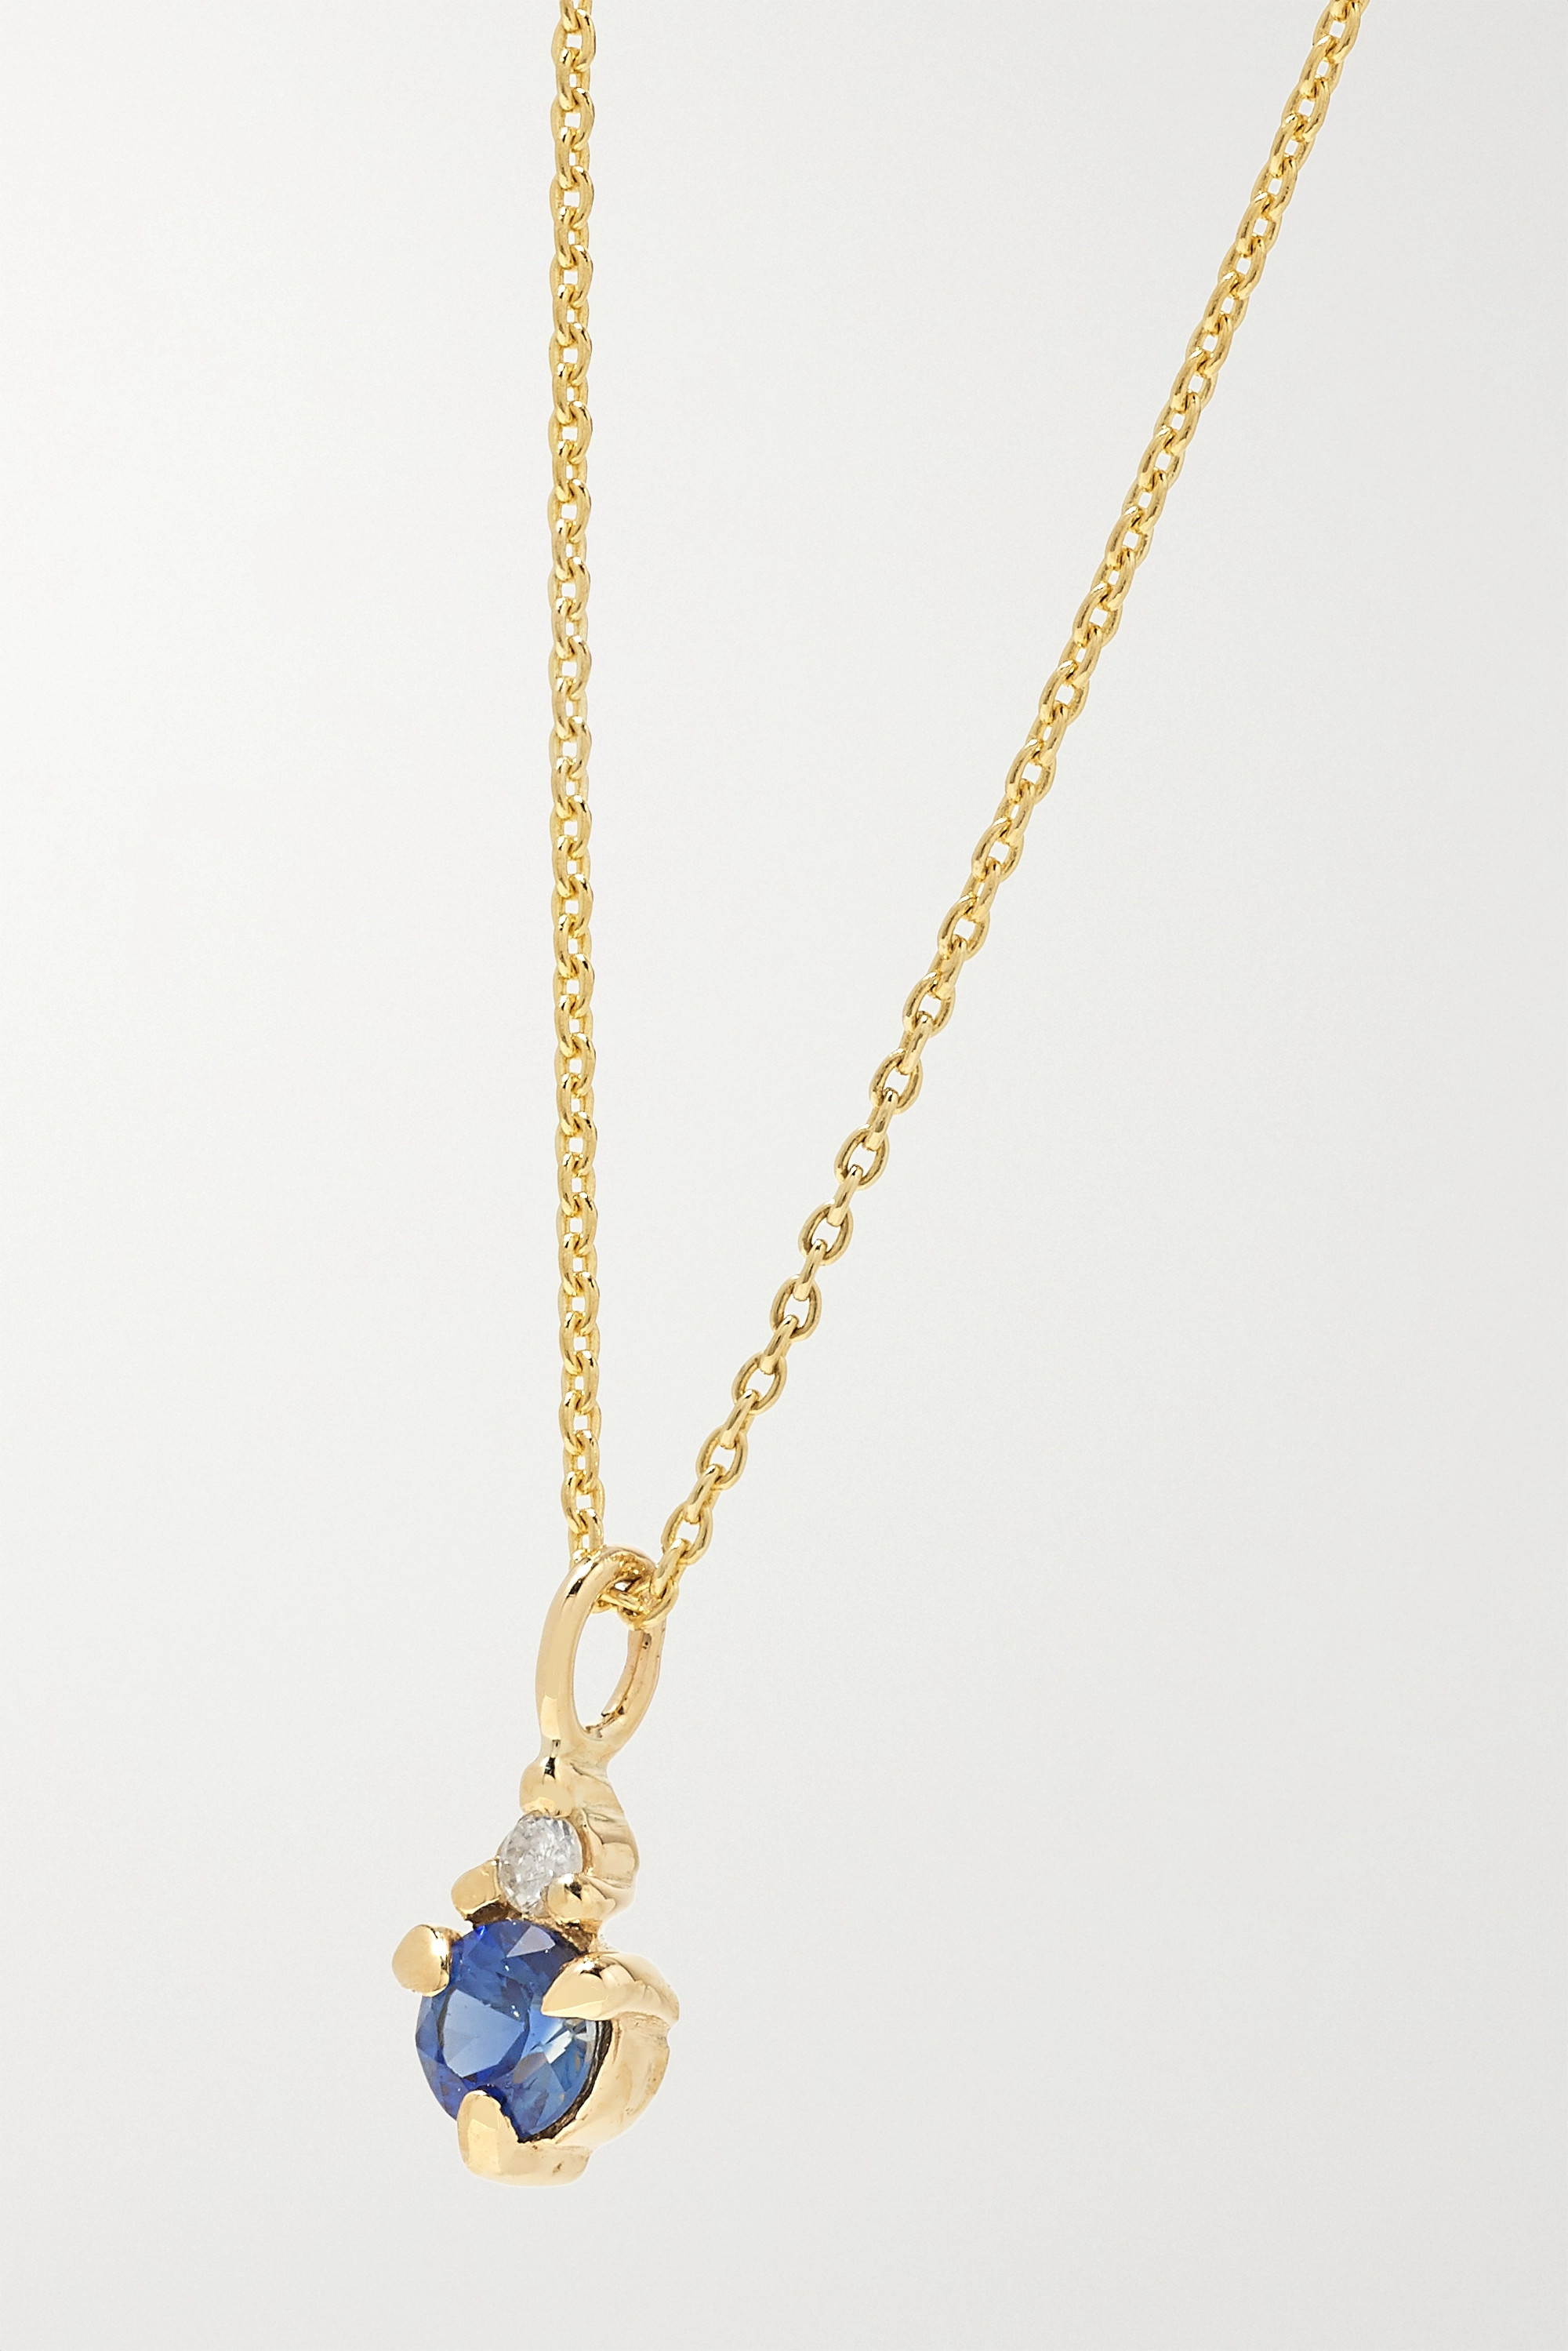 STONE AND STRAND Birthstone gold multi-stone necklace